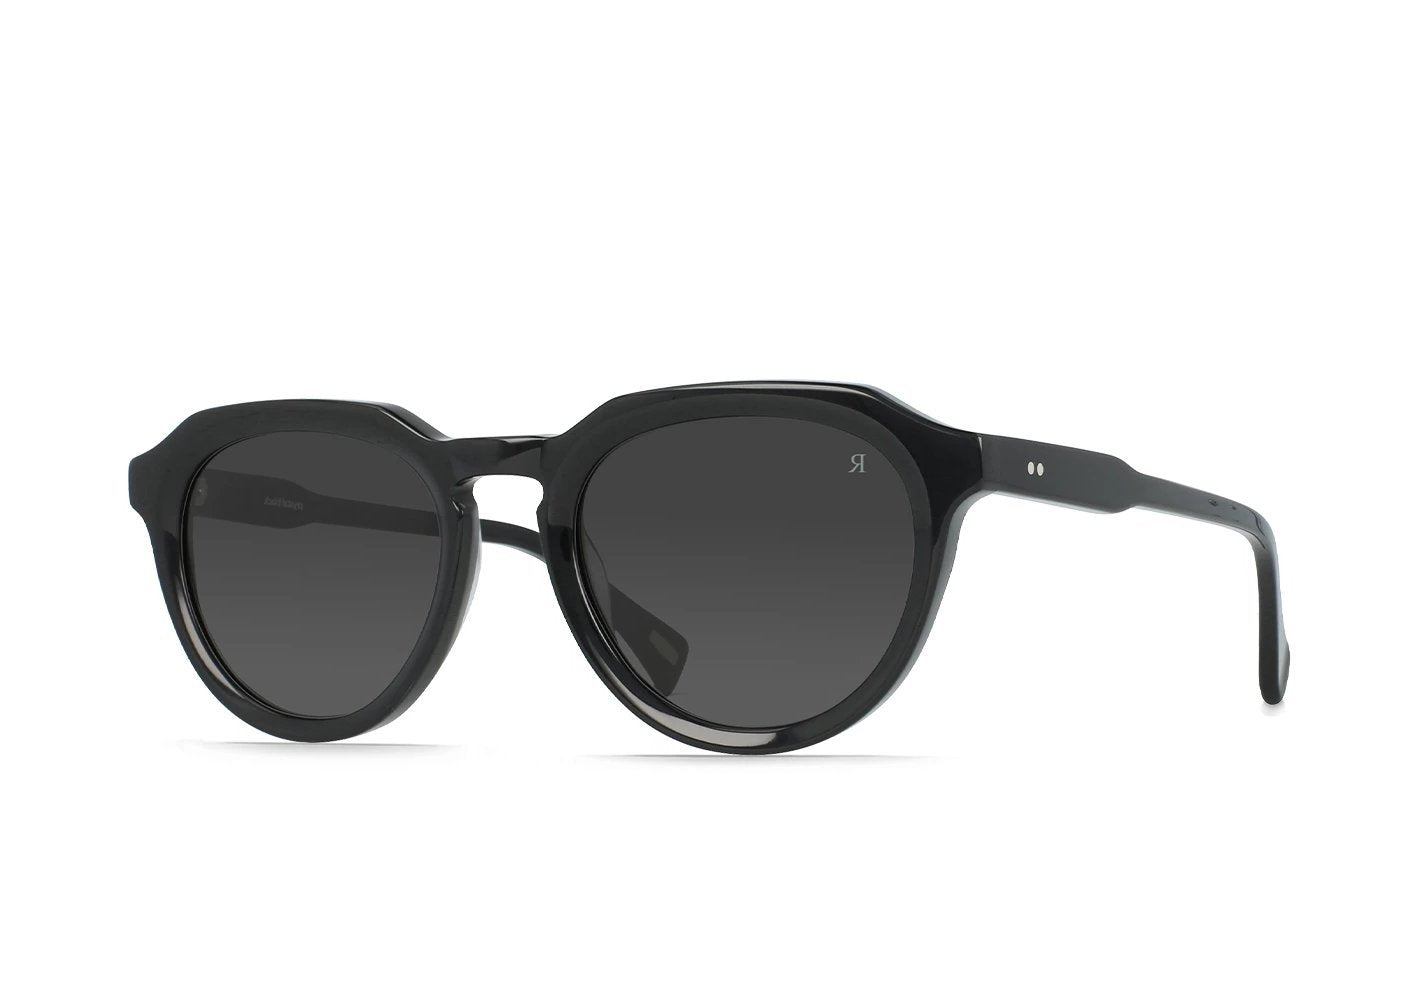 RAEN Sage Crystal Black/Dark Smoke - Board Store RaenSunglasses